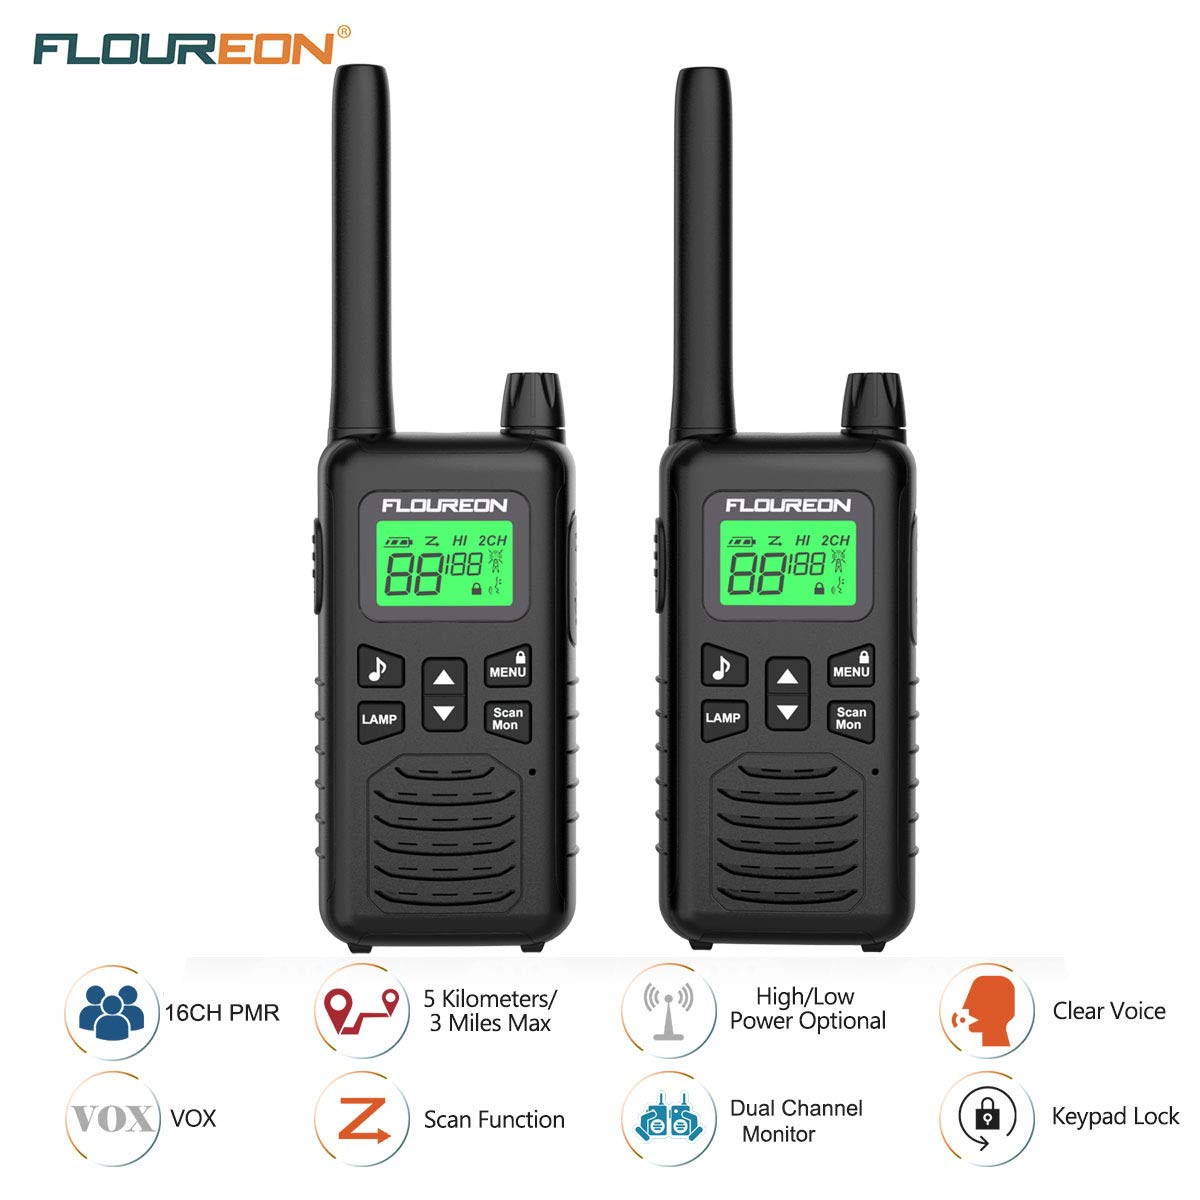 FLOUREON 2X PMR Funkgeräte Set 16 Kanäle Walkie Talkies 2-Wege Radio Walki Talki Funkhandy Interphone mit LC-Display 5KM, Schwarz